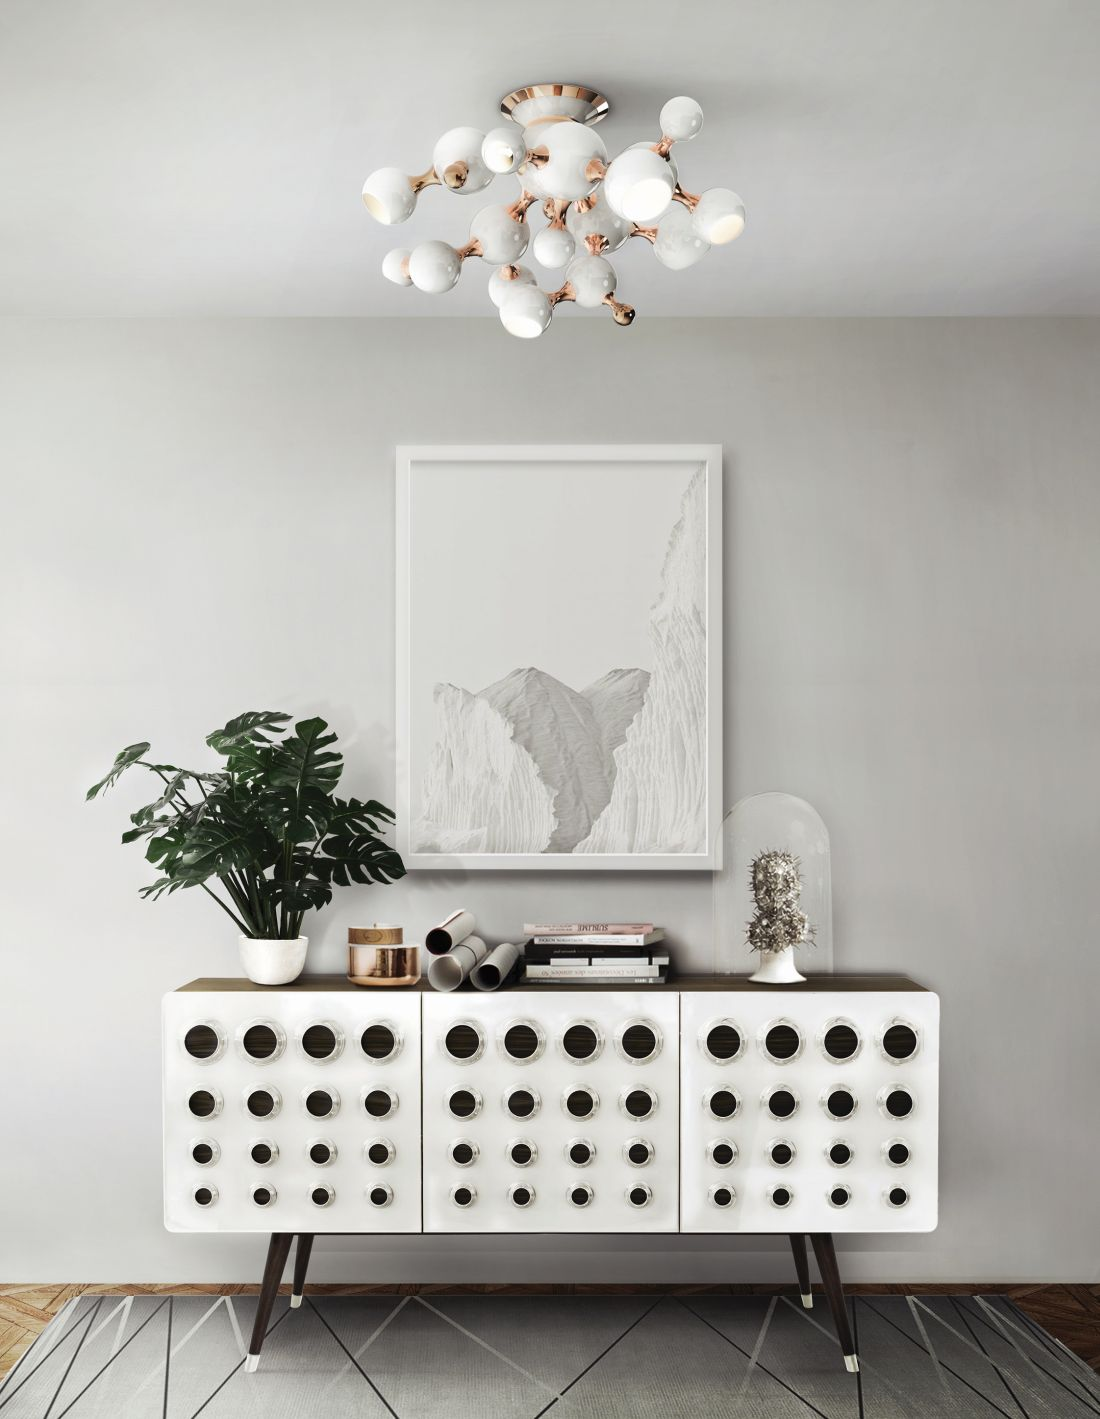 15essentialmonocles-sideboard-for-spring-summer-white-and-clean-home-decor.jpg